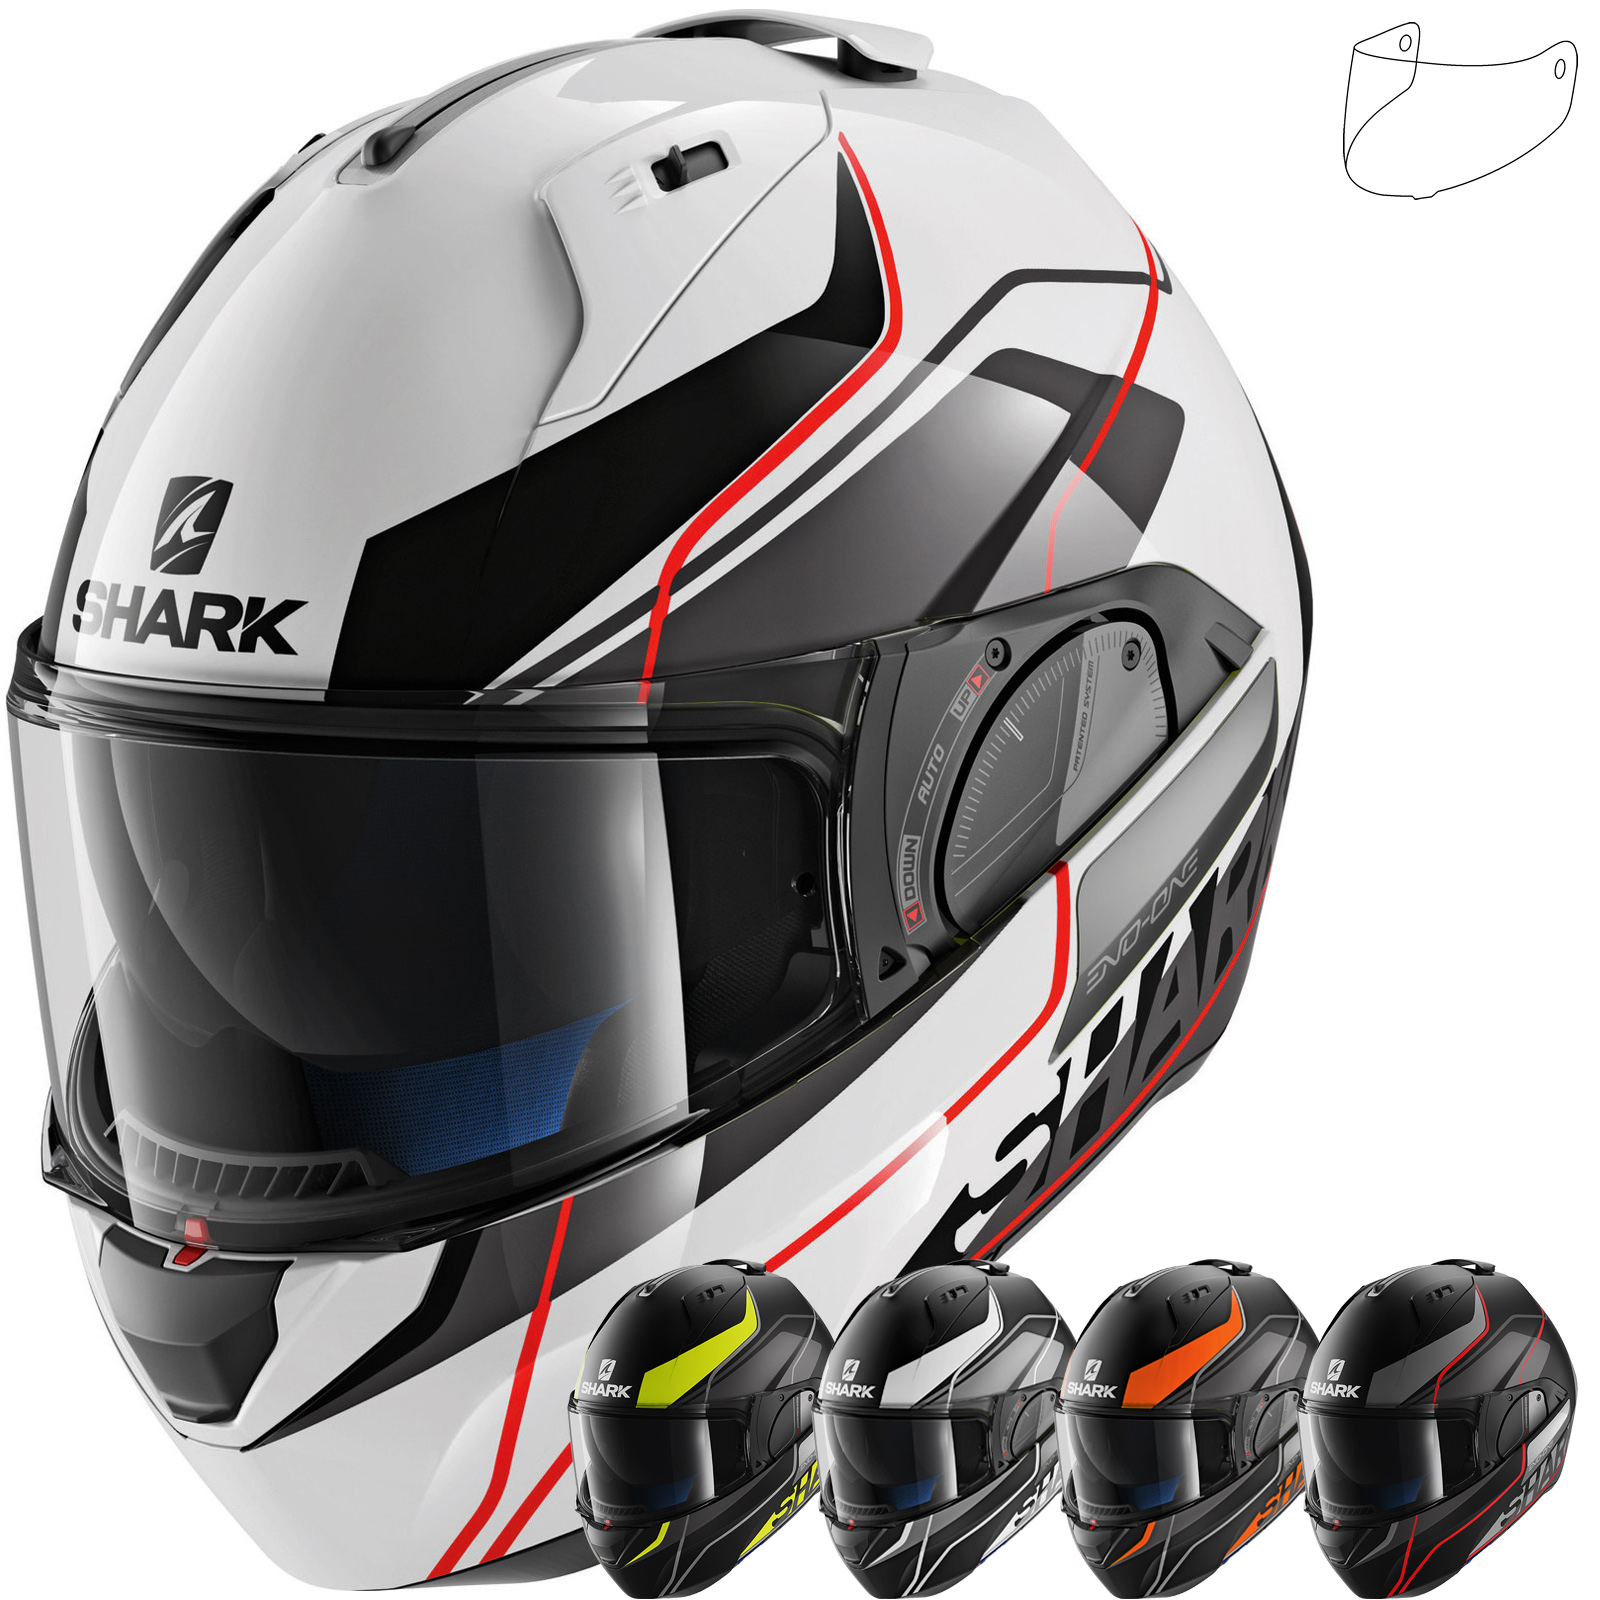 shark evo one 2 krono flip front motorcycle helmet visor new arrivals. Black Bedroom Furniture Sets. Home Design Ideas